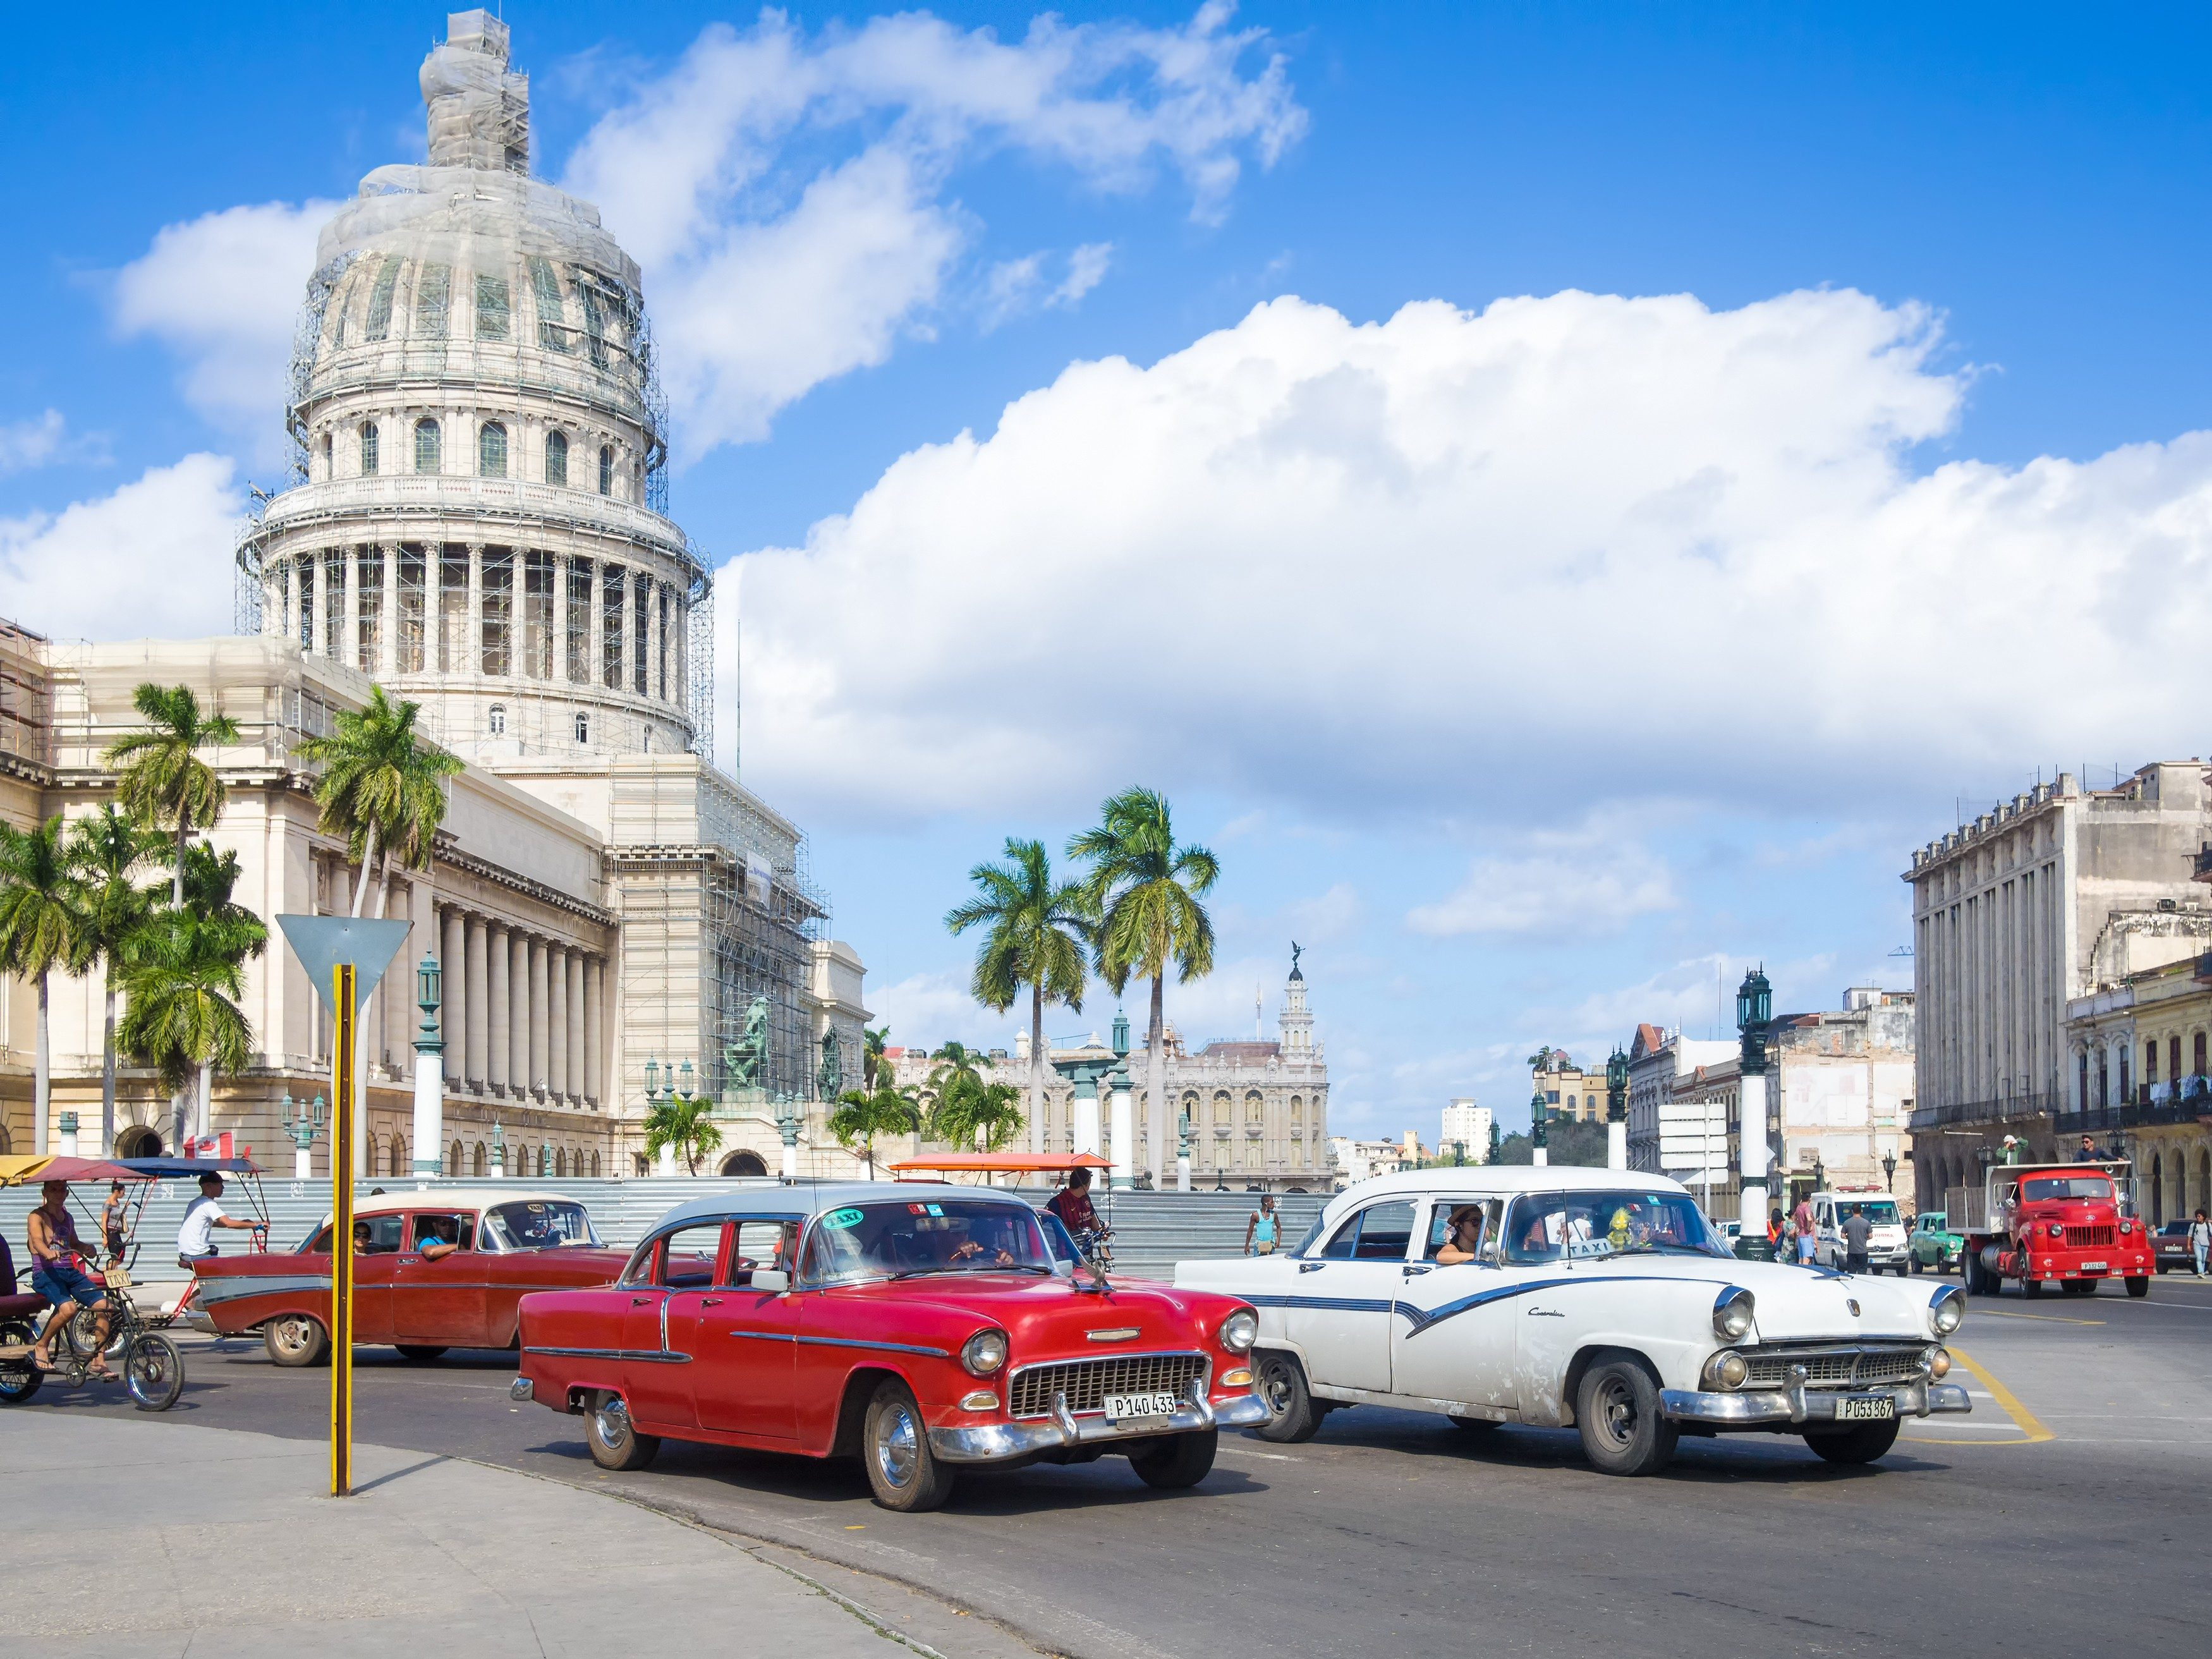 5. The Modern City, Havana, Cuba